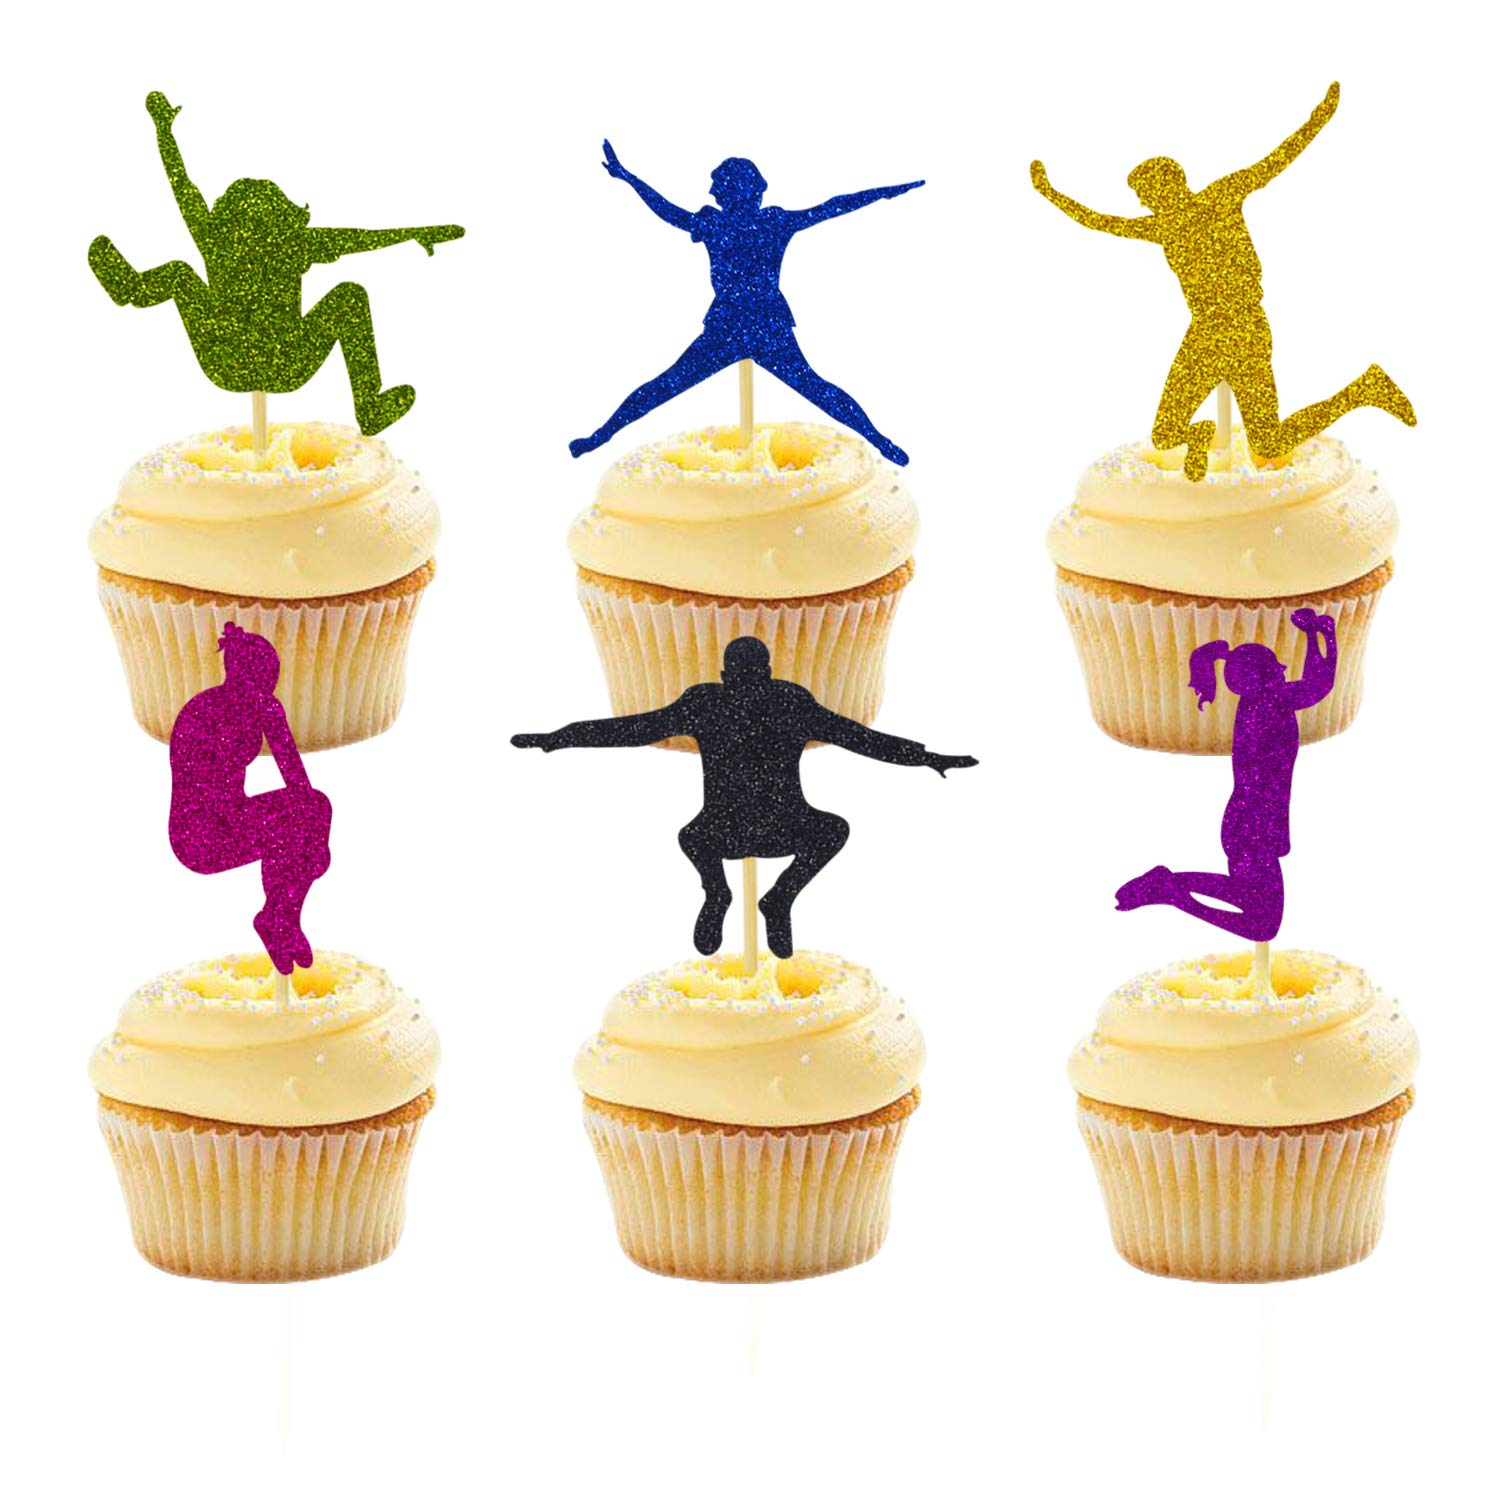 24 Packs Trampoline Cupcake Topper Bounce House or Jumping Party Gymnastics Kids Birthday Decorations by Joymee